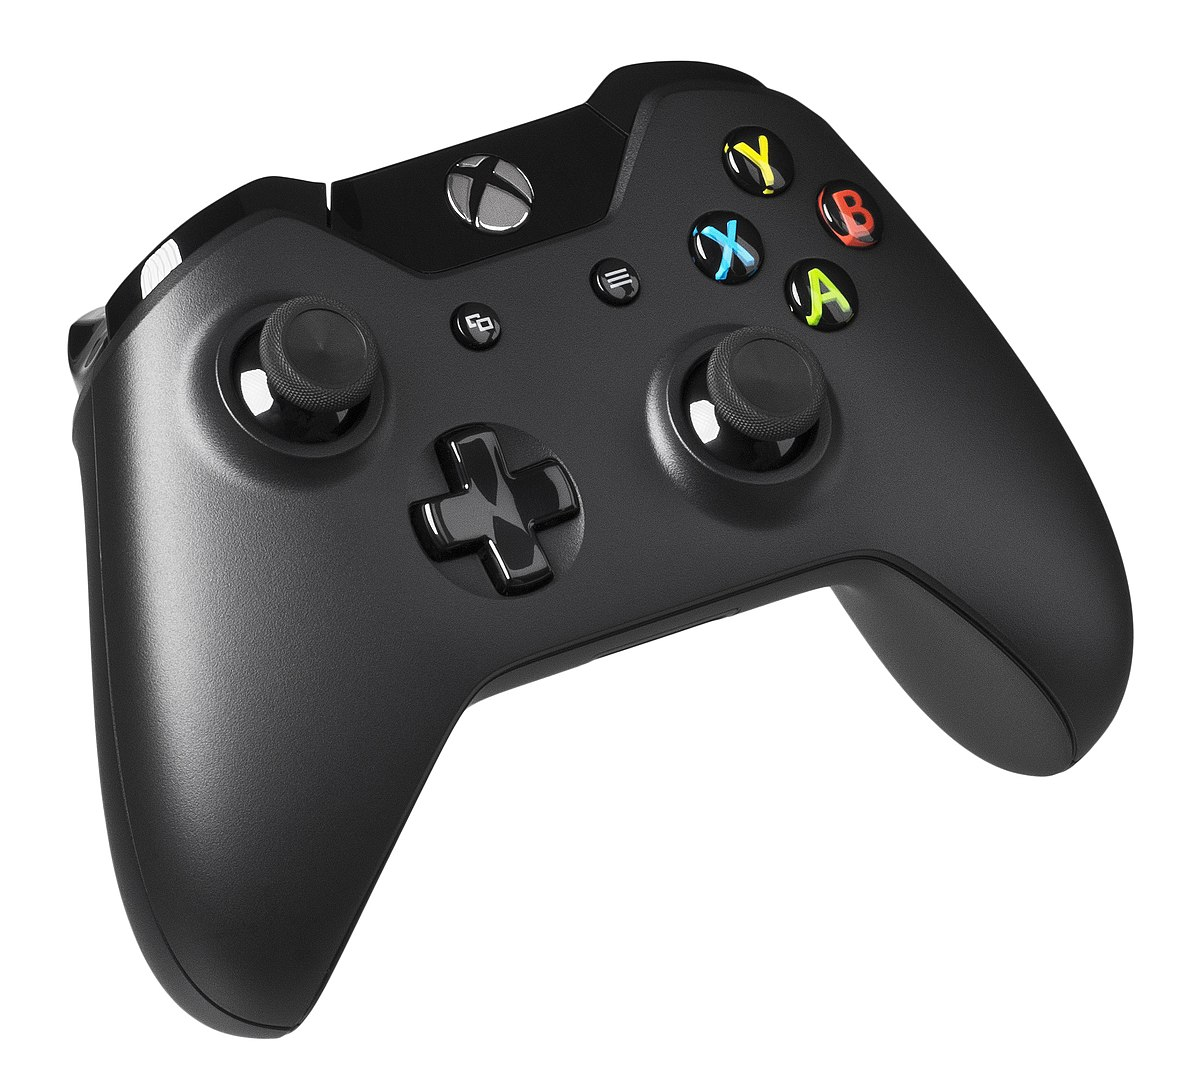 Xbox One controller - WikipediaWikipedia